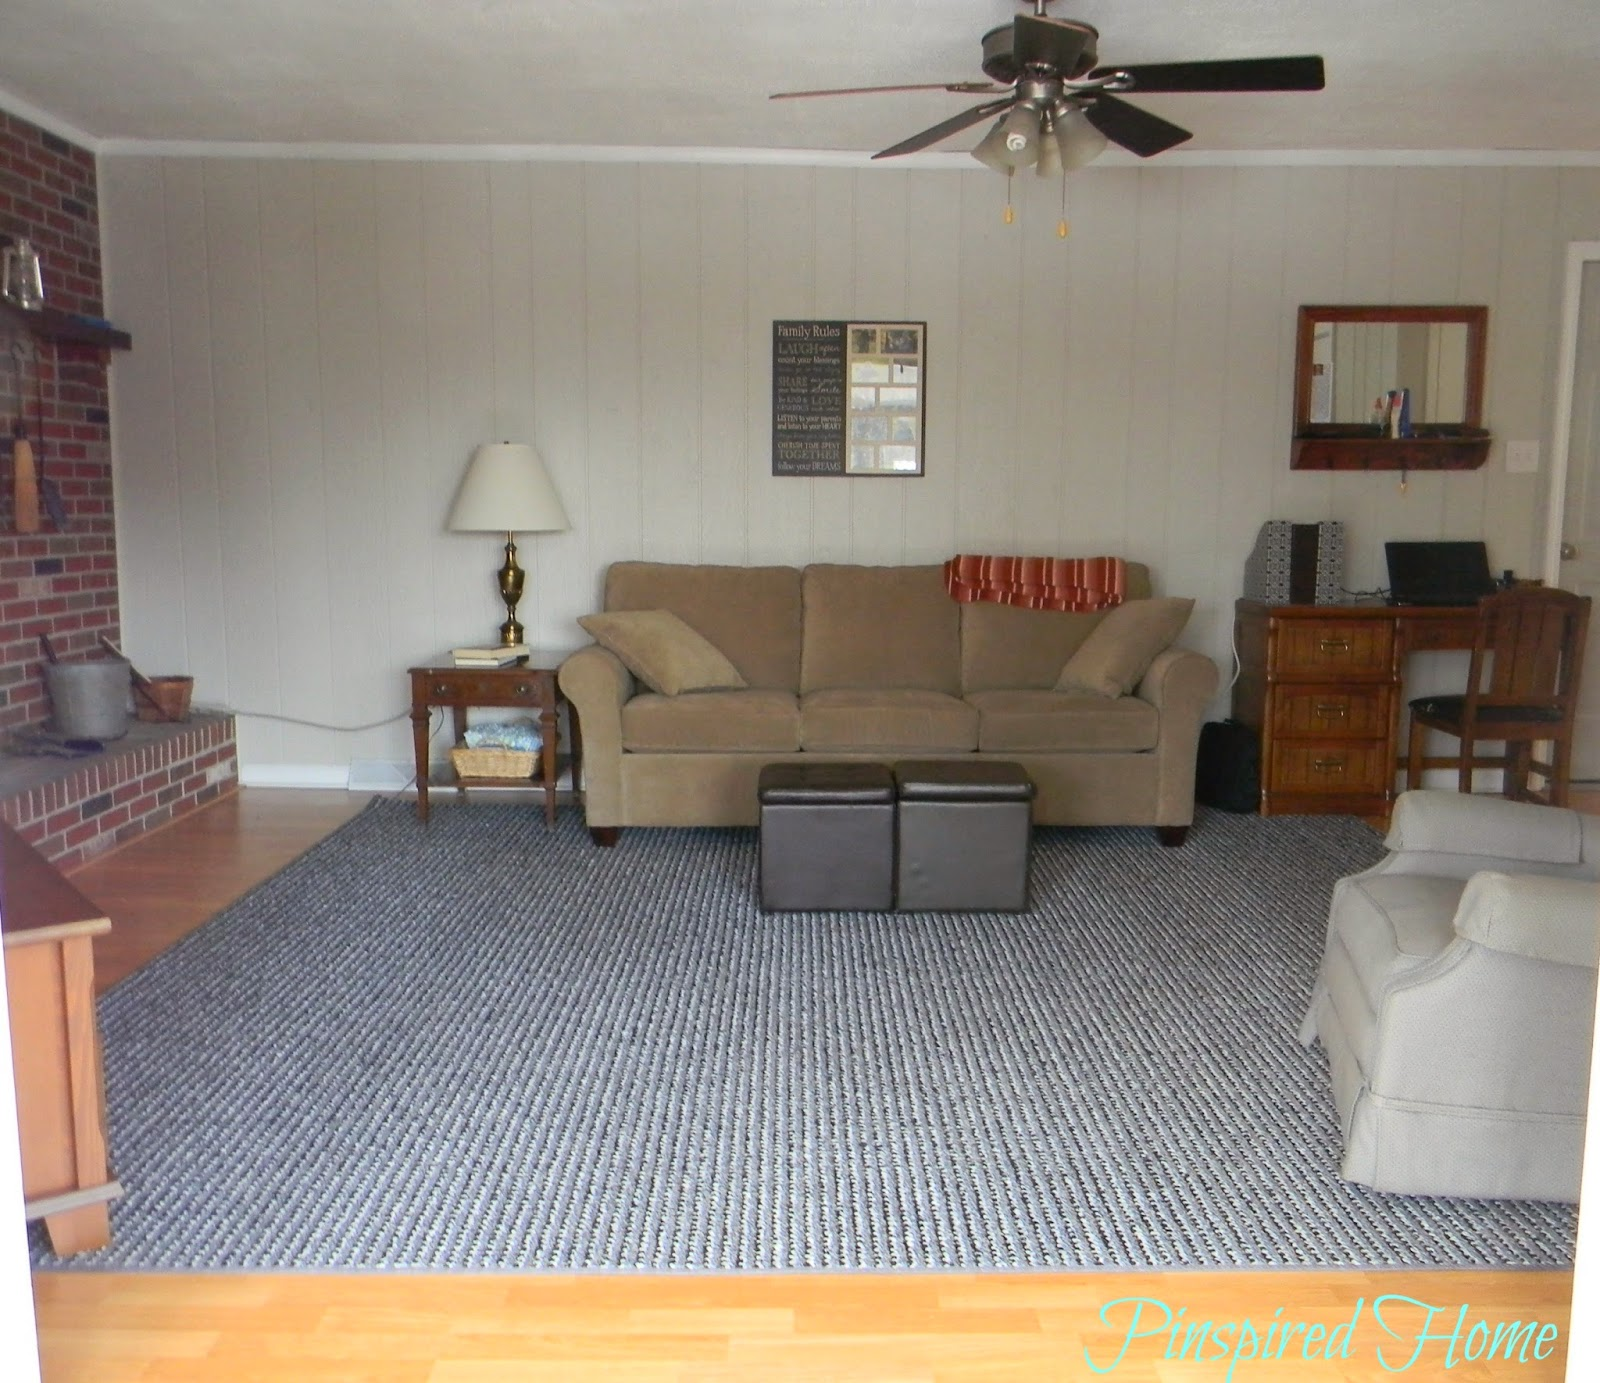 Pinspired Home: How We Found A Large Custom Area Rug For Less Than $200!